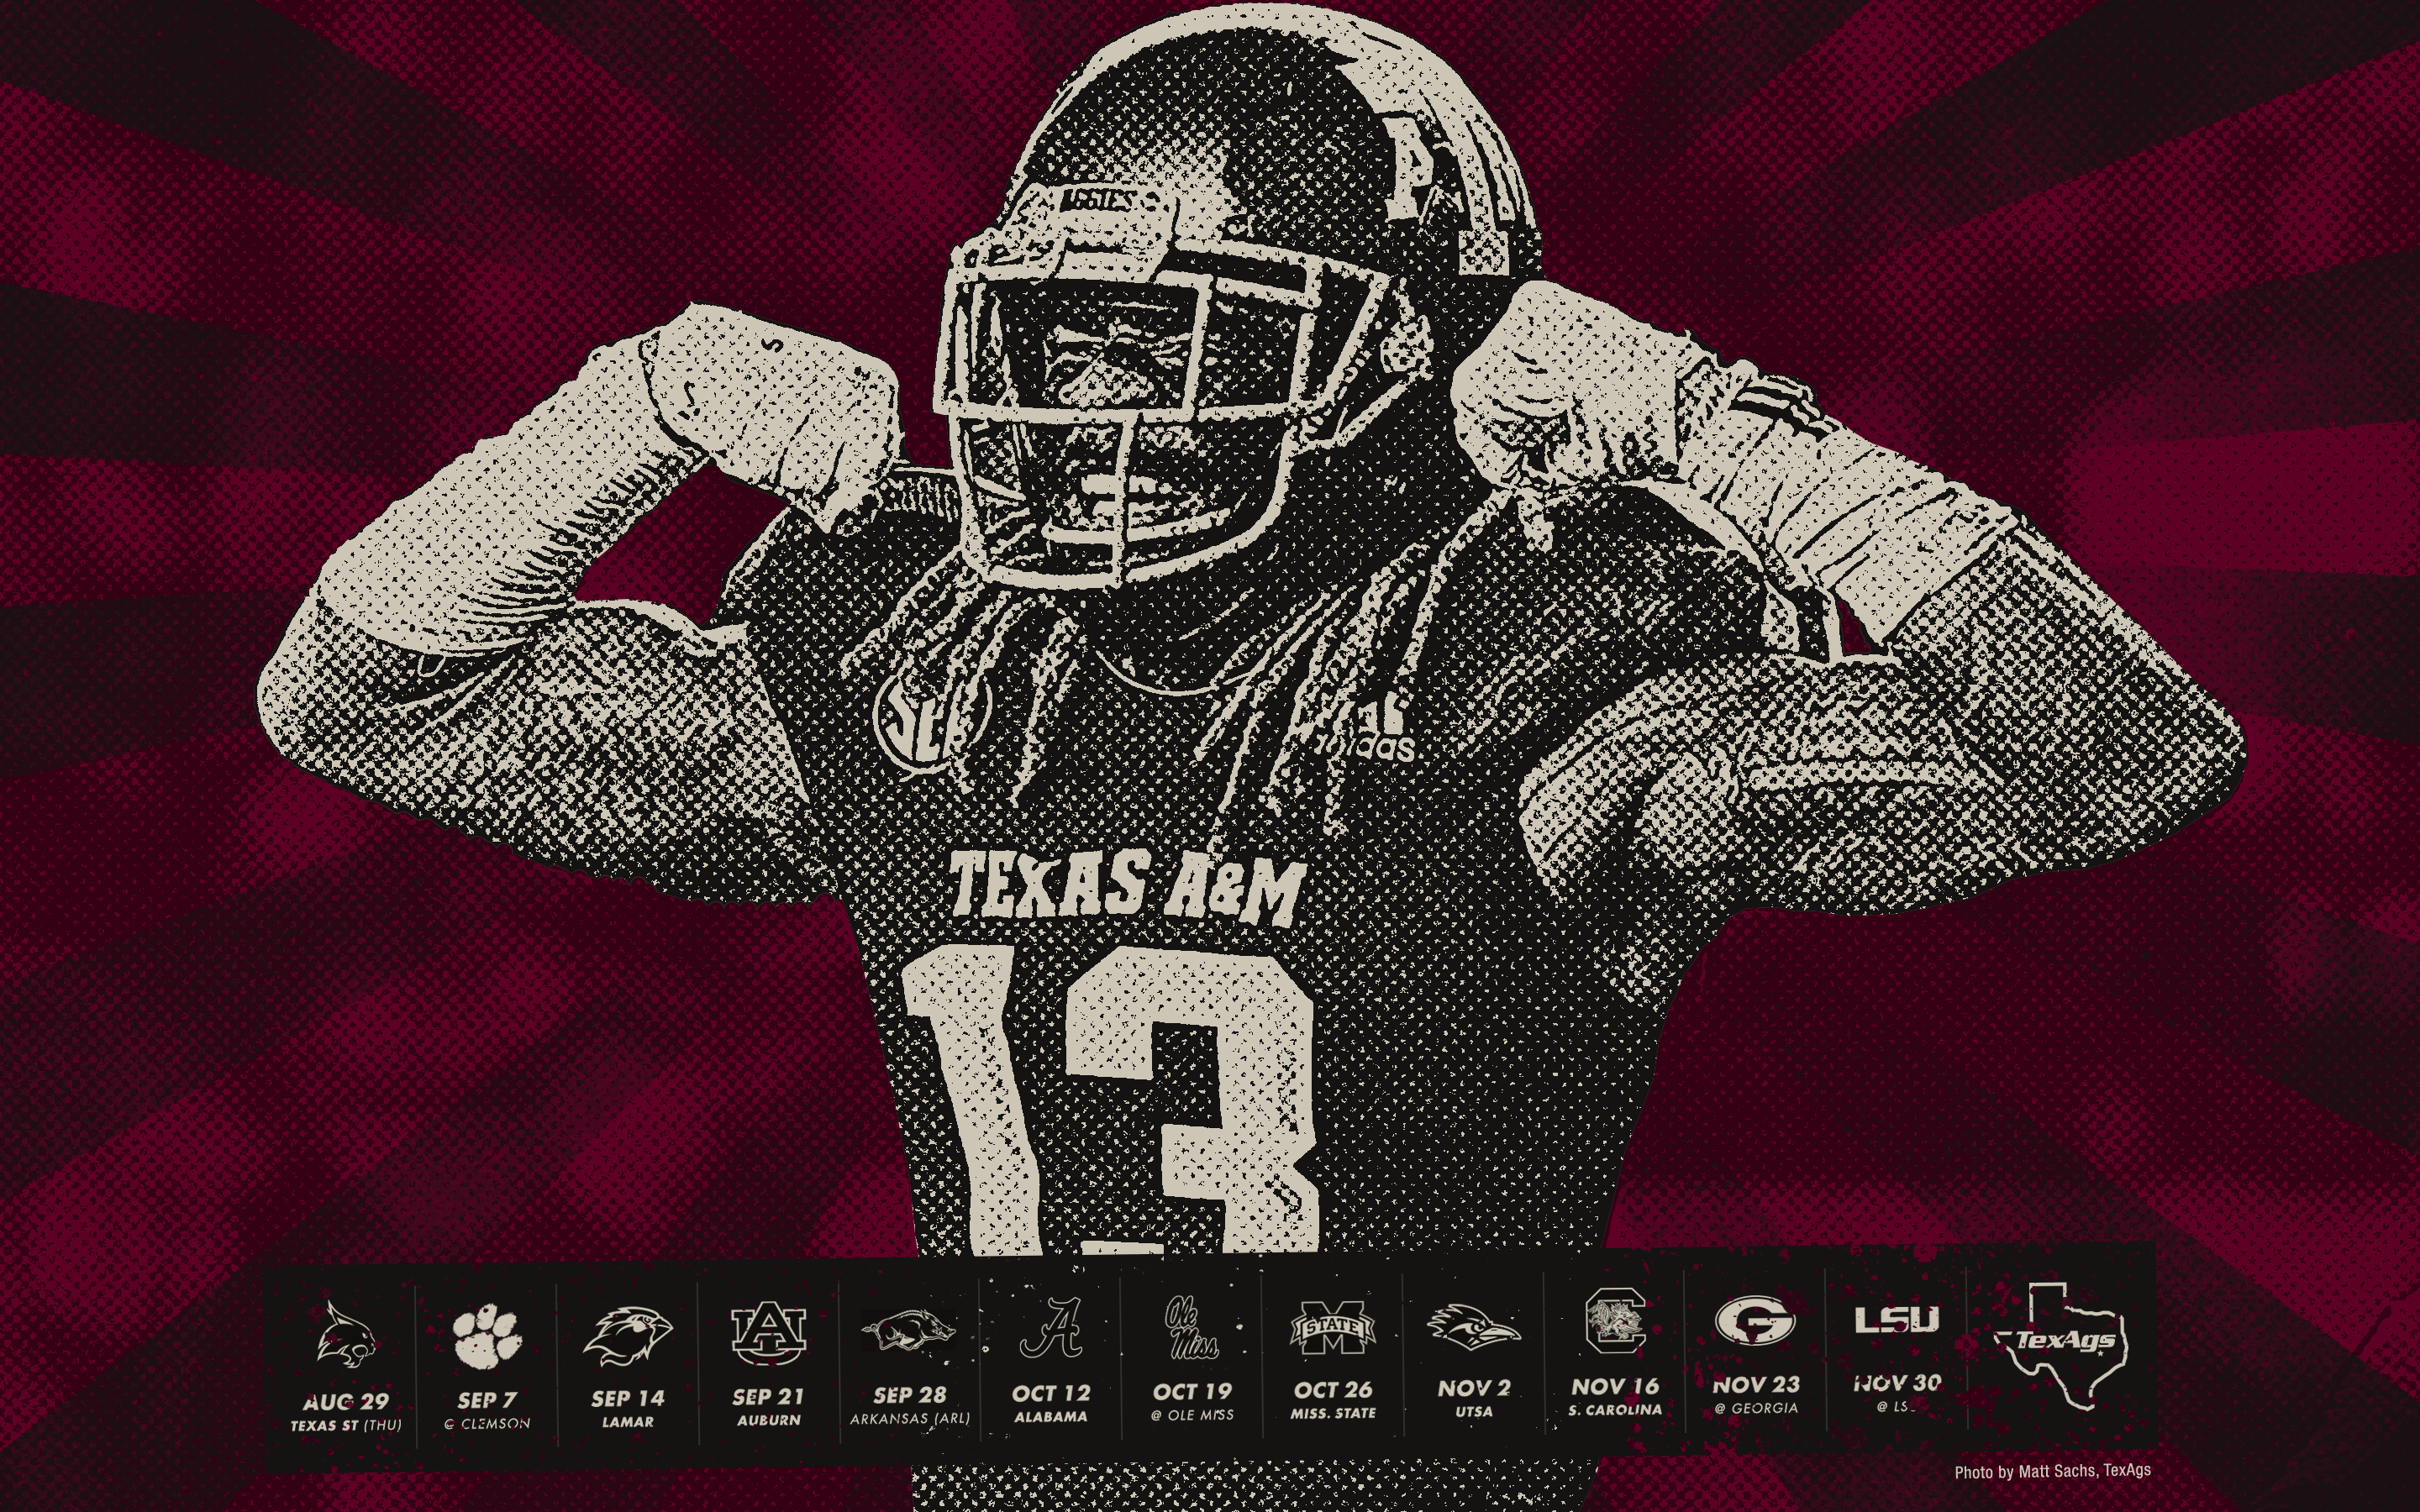 texas a&m 2020 football schedule